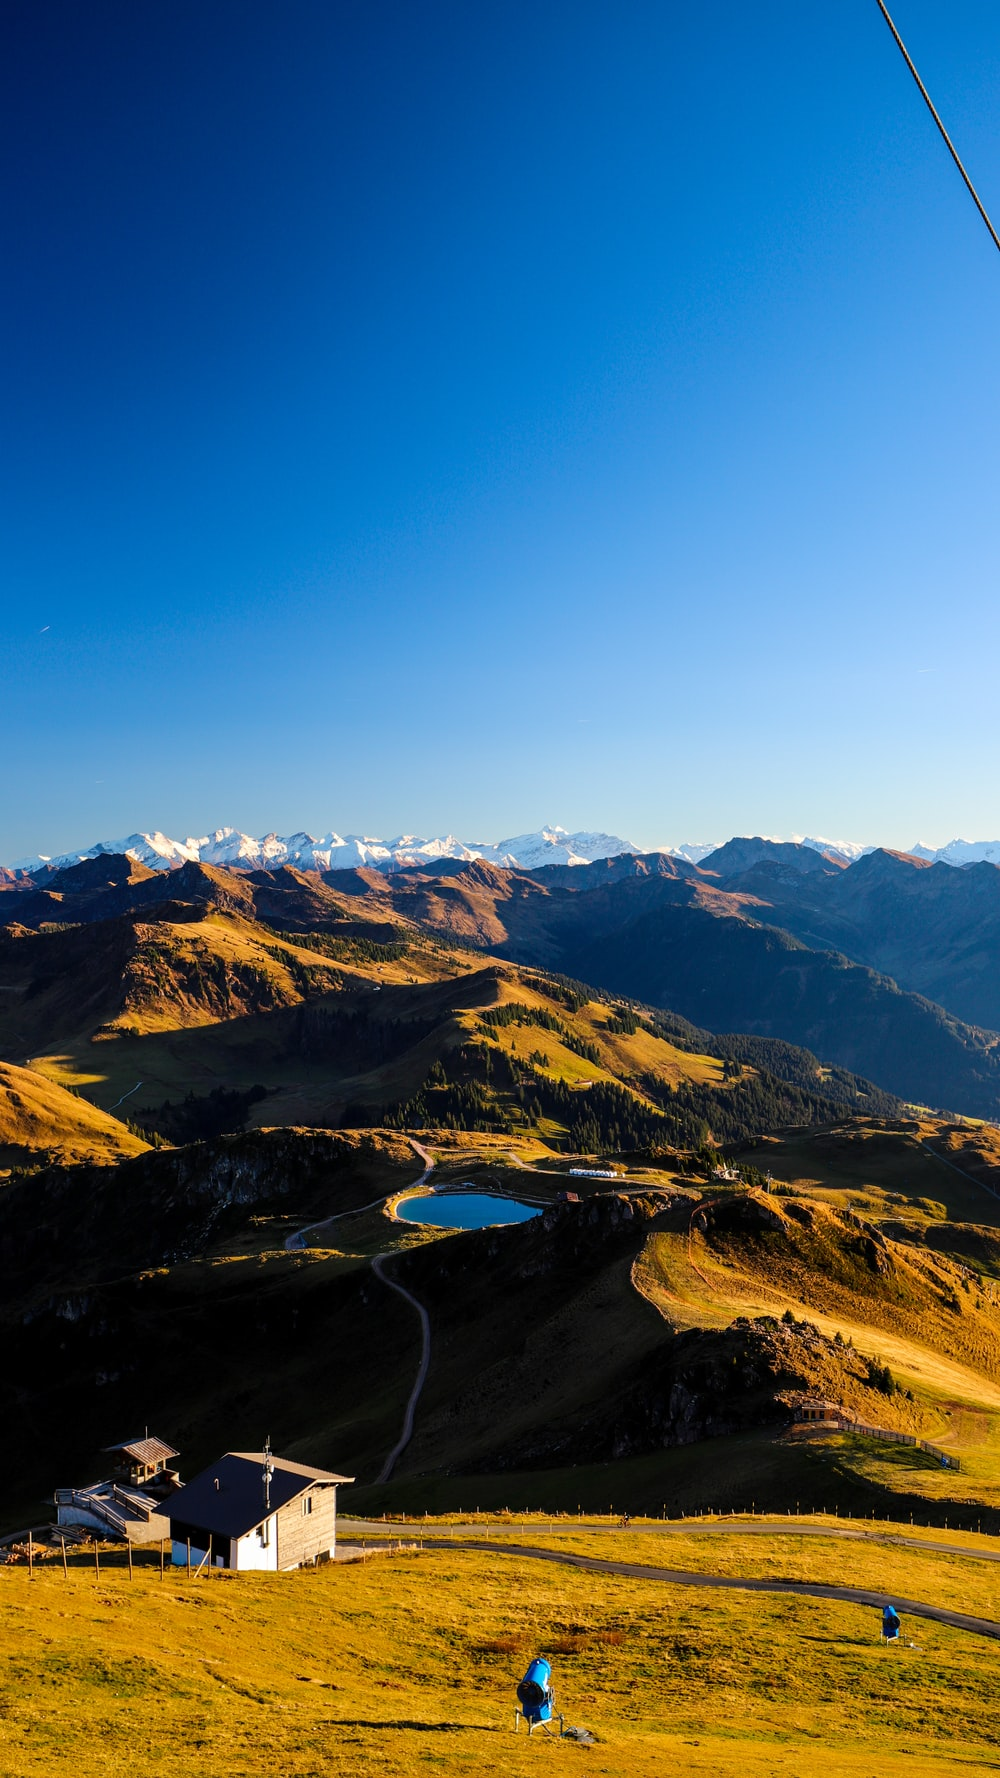 aerial view of lake in the middle of mountains during daytime